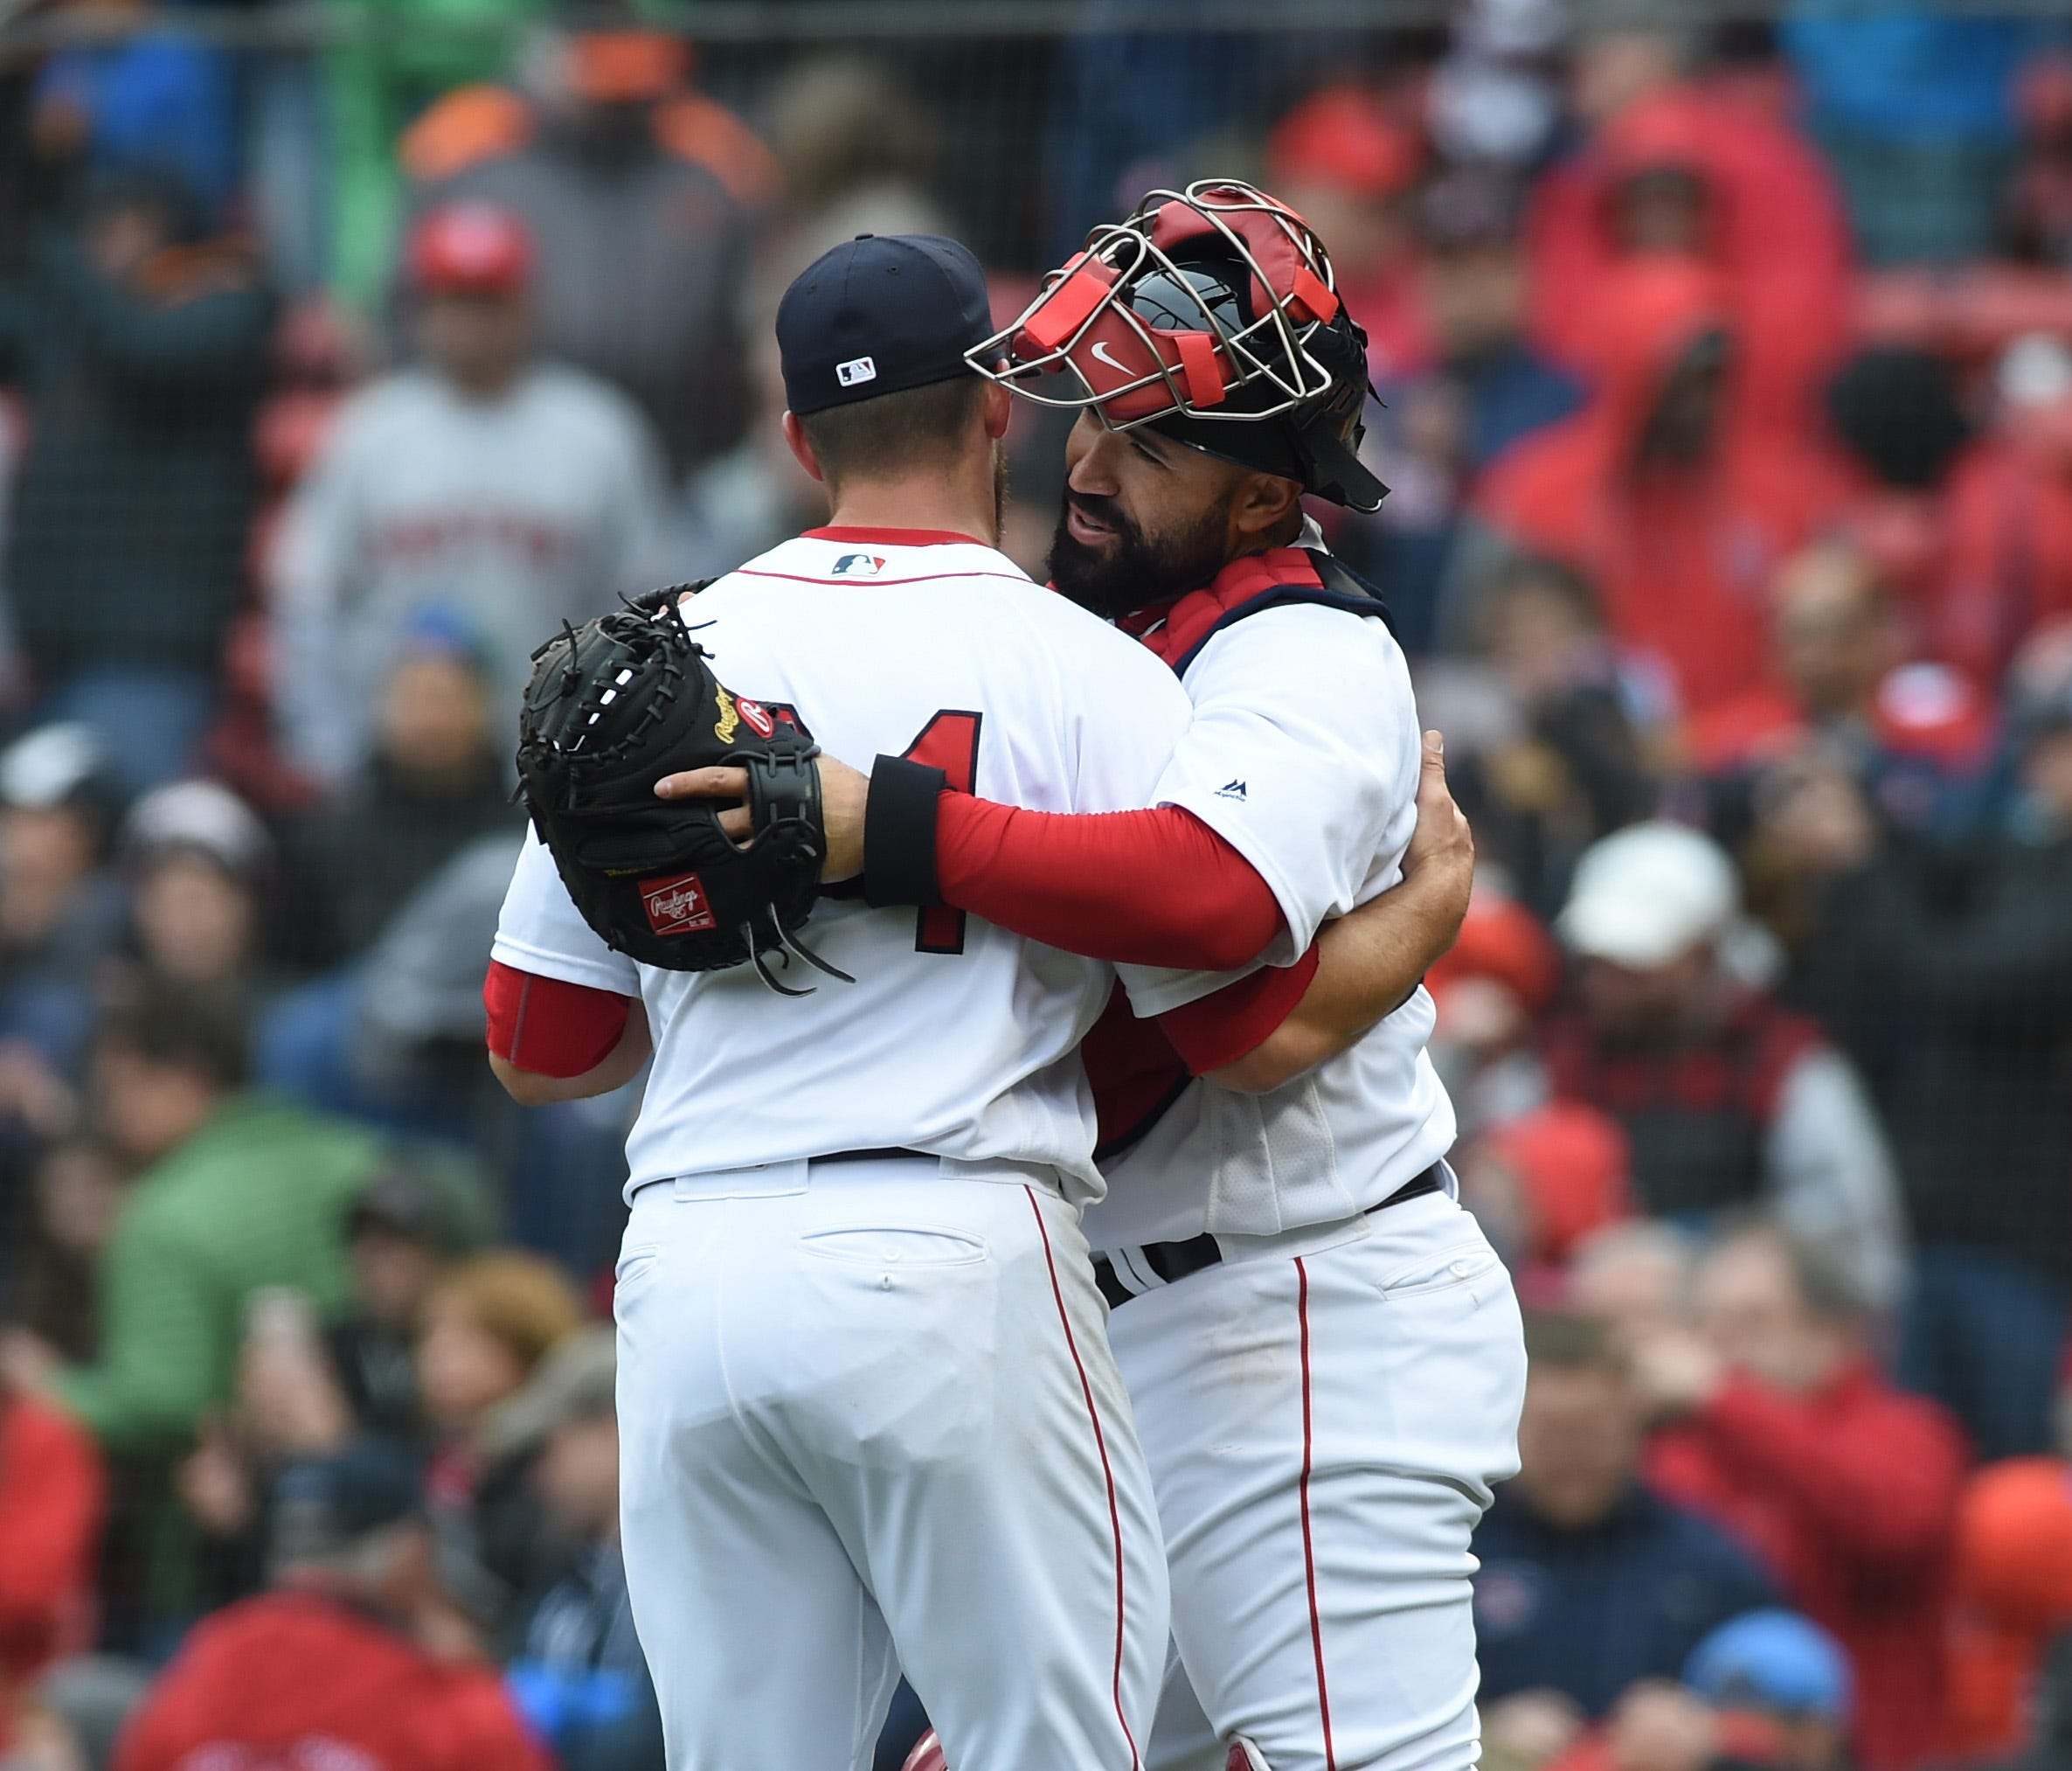 Red Sox relief pitcher Marcus Walden is congratulated by catcher Sandy Leon after a win.